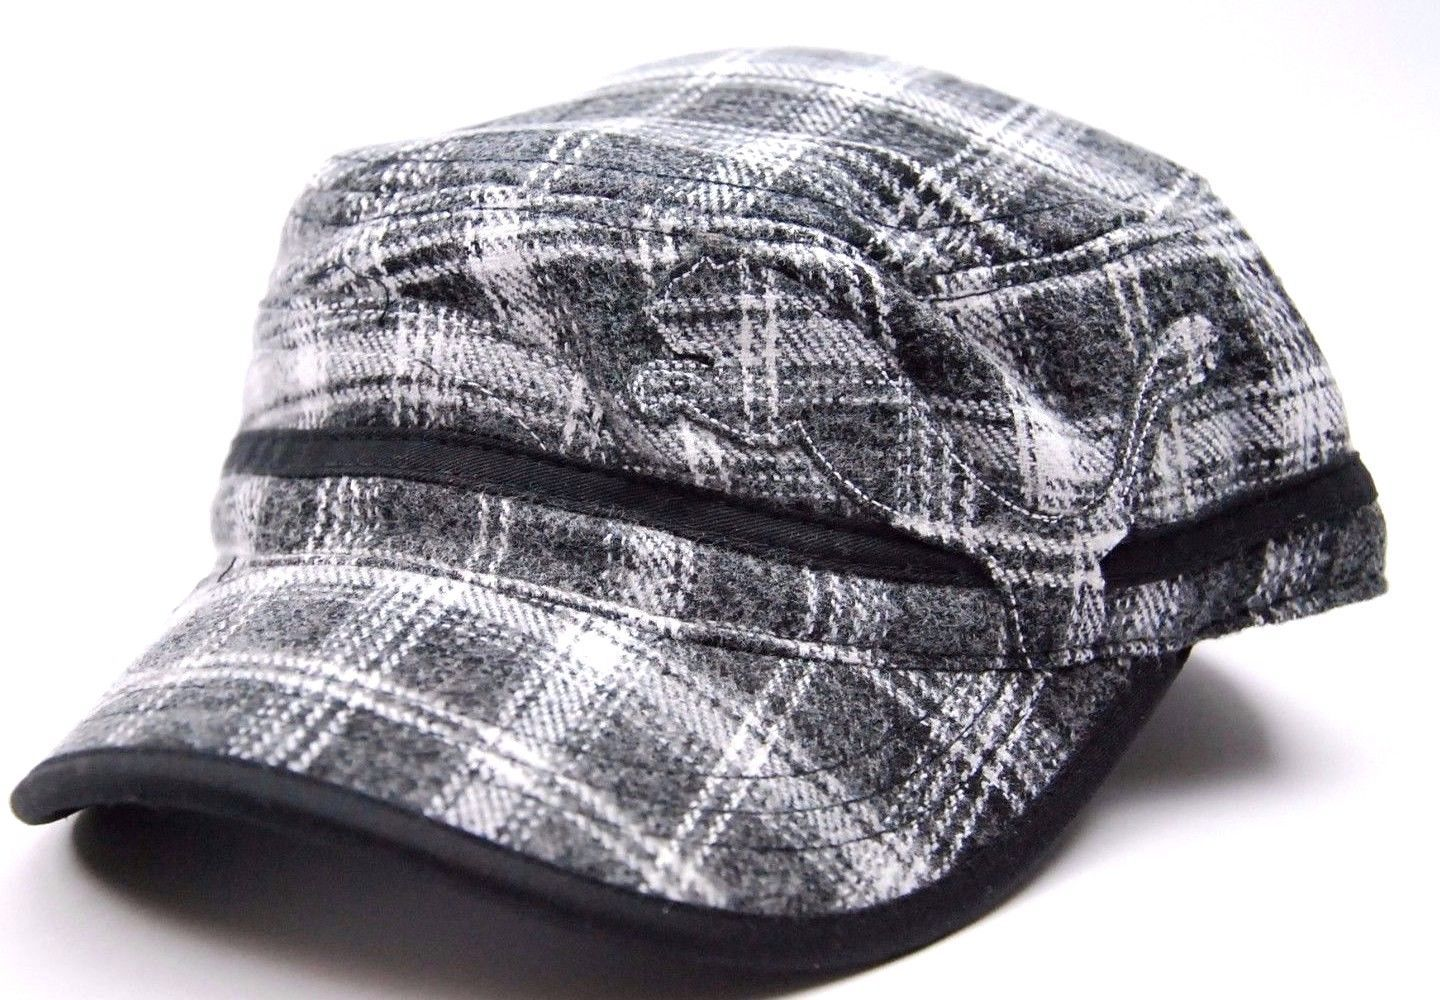 S l1600. S l1600. Previous. Puma Plaid Military Cadet Style Cap ... 73839ba7efe